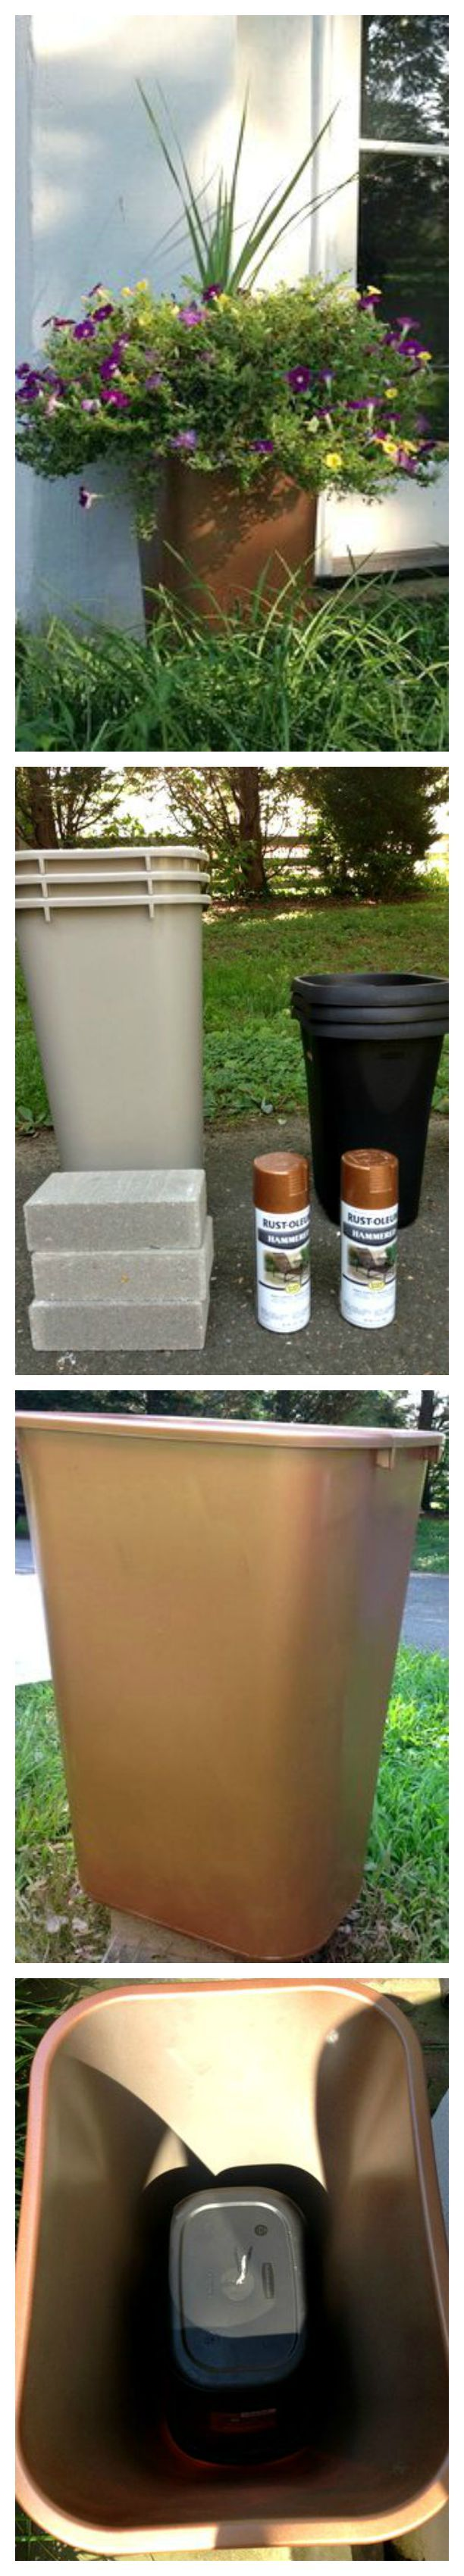 DIY Large Outdoor Planters For Cheap Create Large Lovely - Artist turns nyc trash cans into giant flower filled vases